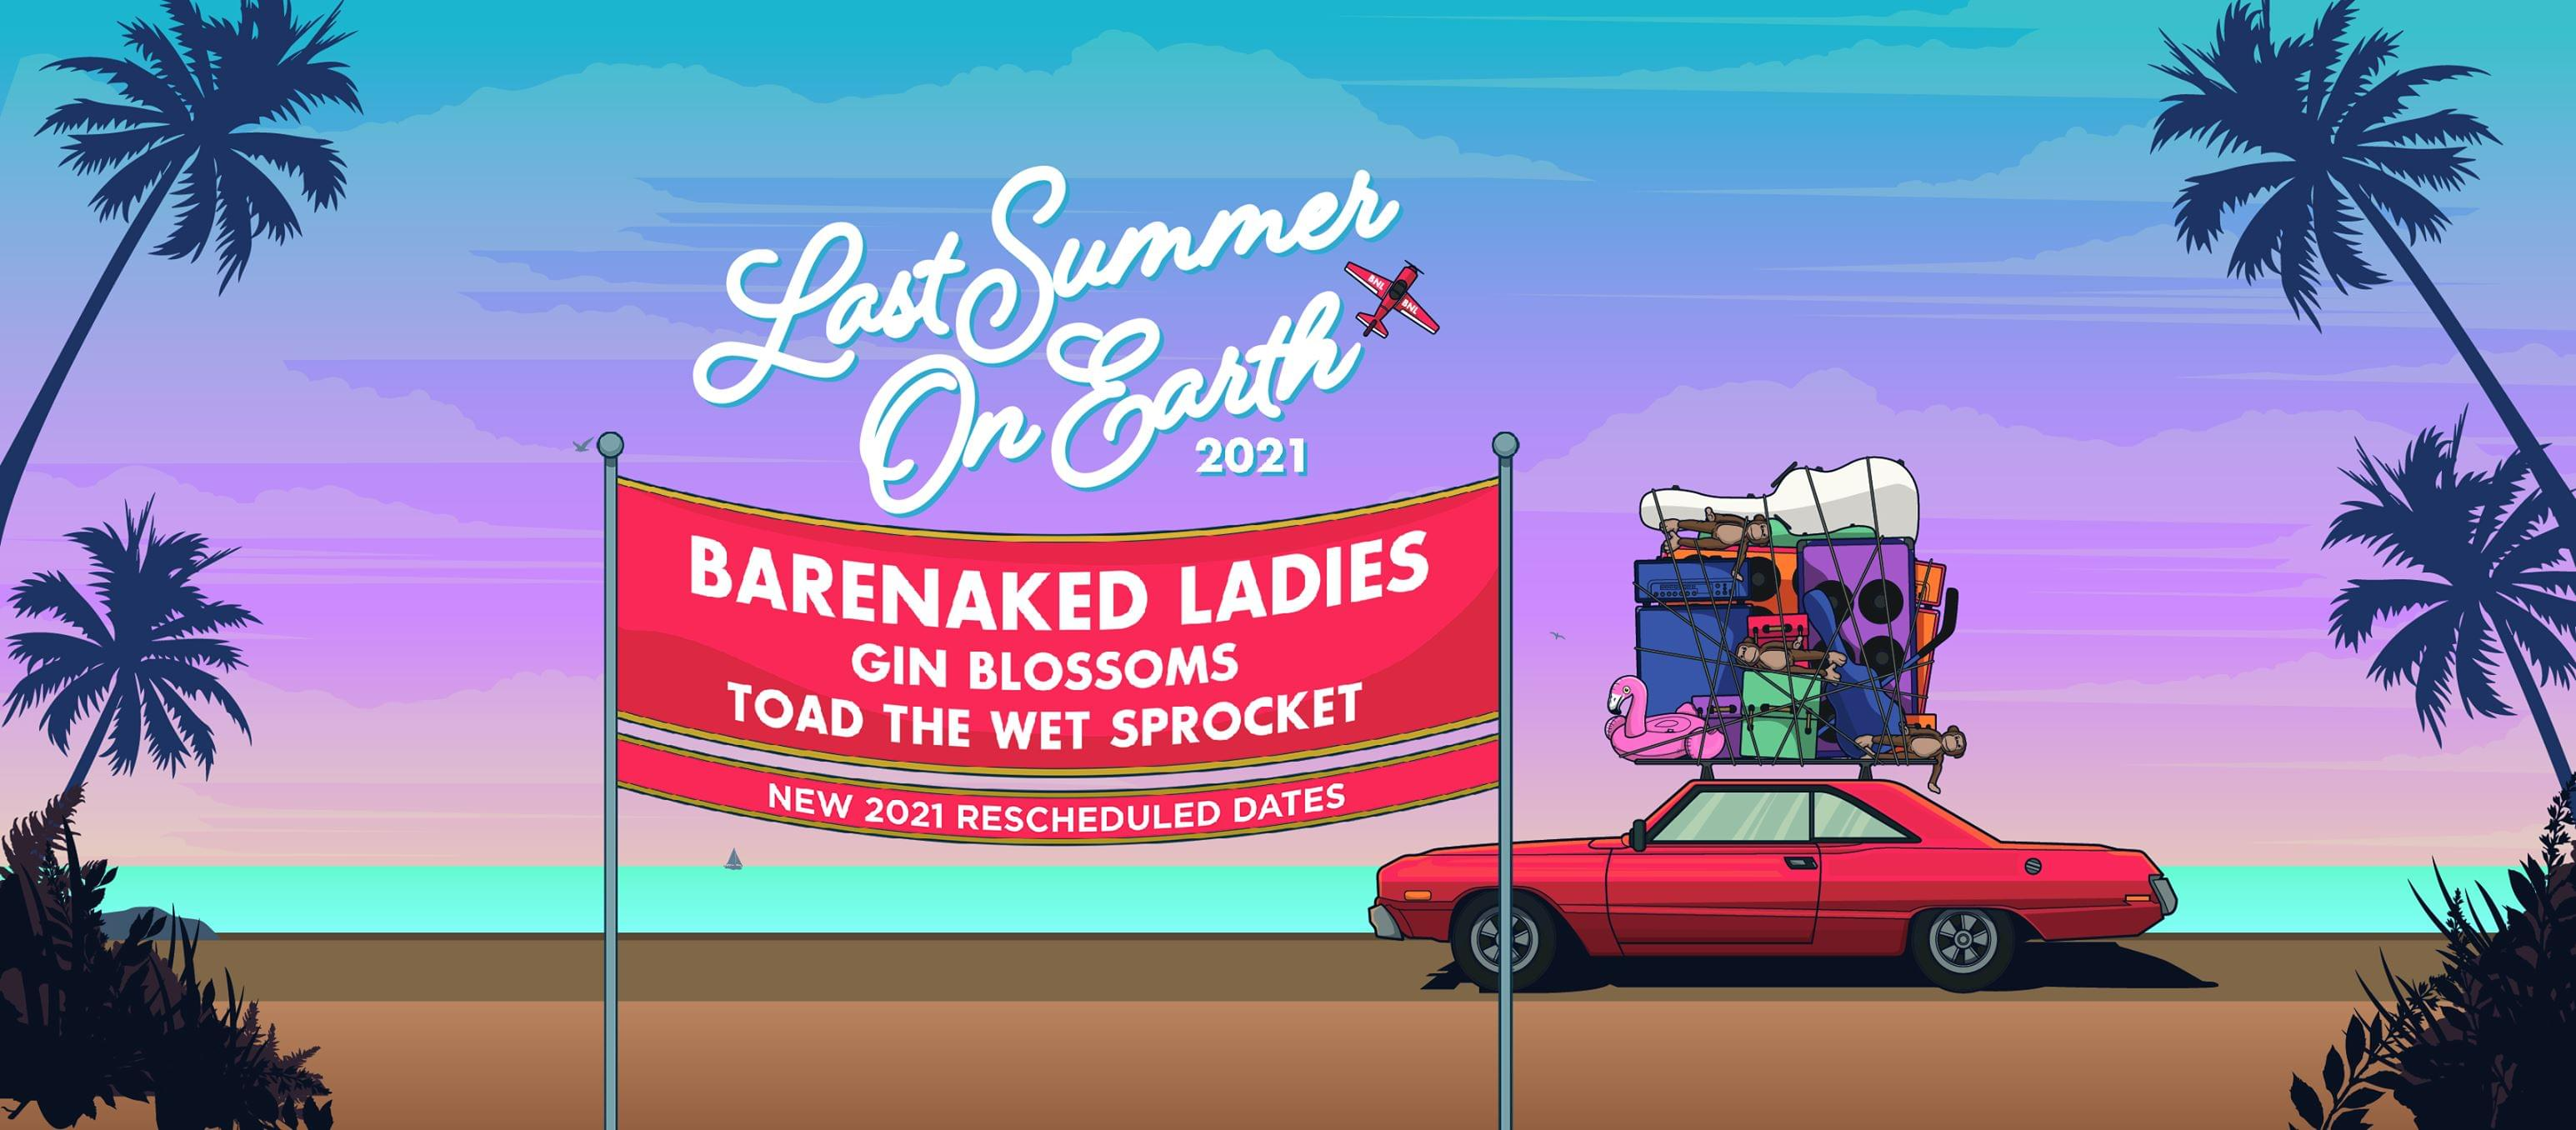 July 1, 2022 – Barenaked Ladies, Gin Blossoms & Toad the Wet Sprocket NEW DATE